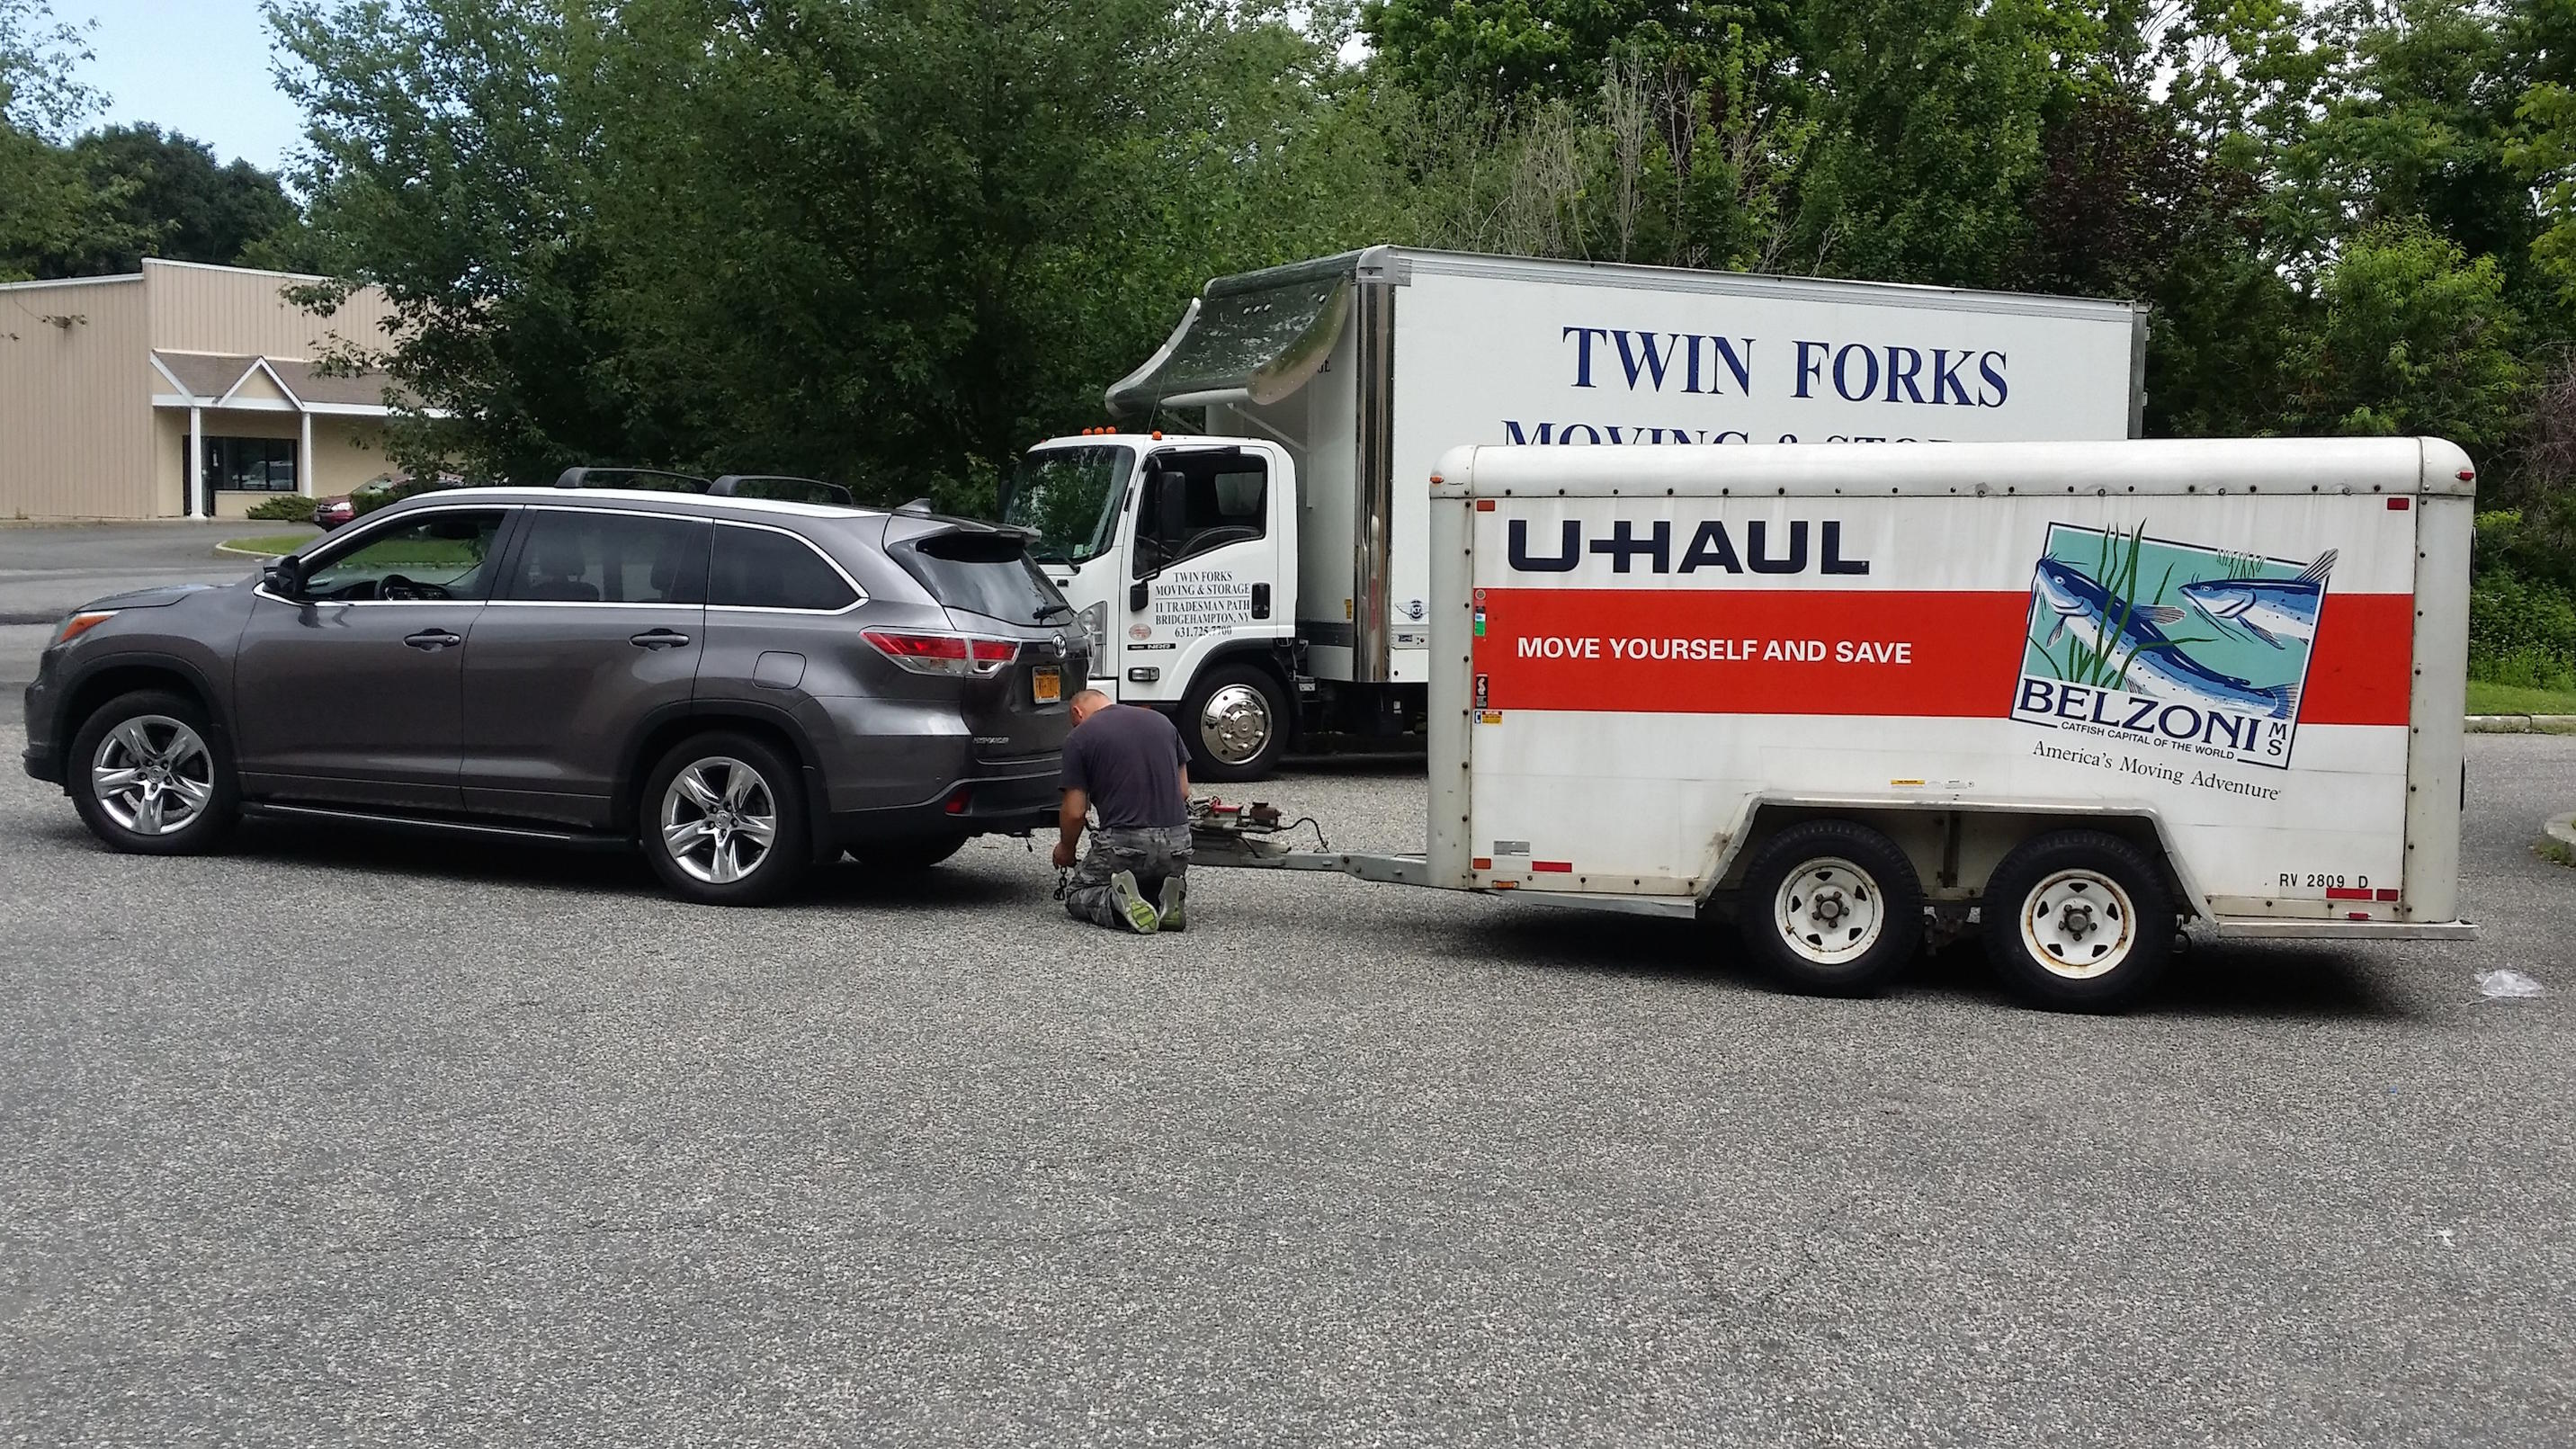 tow trailer pictures toyota nation forum toyota car and truck forums. Black Bedroom Furniture Sets. Home Design Ideas